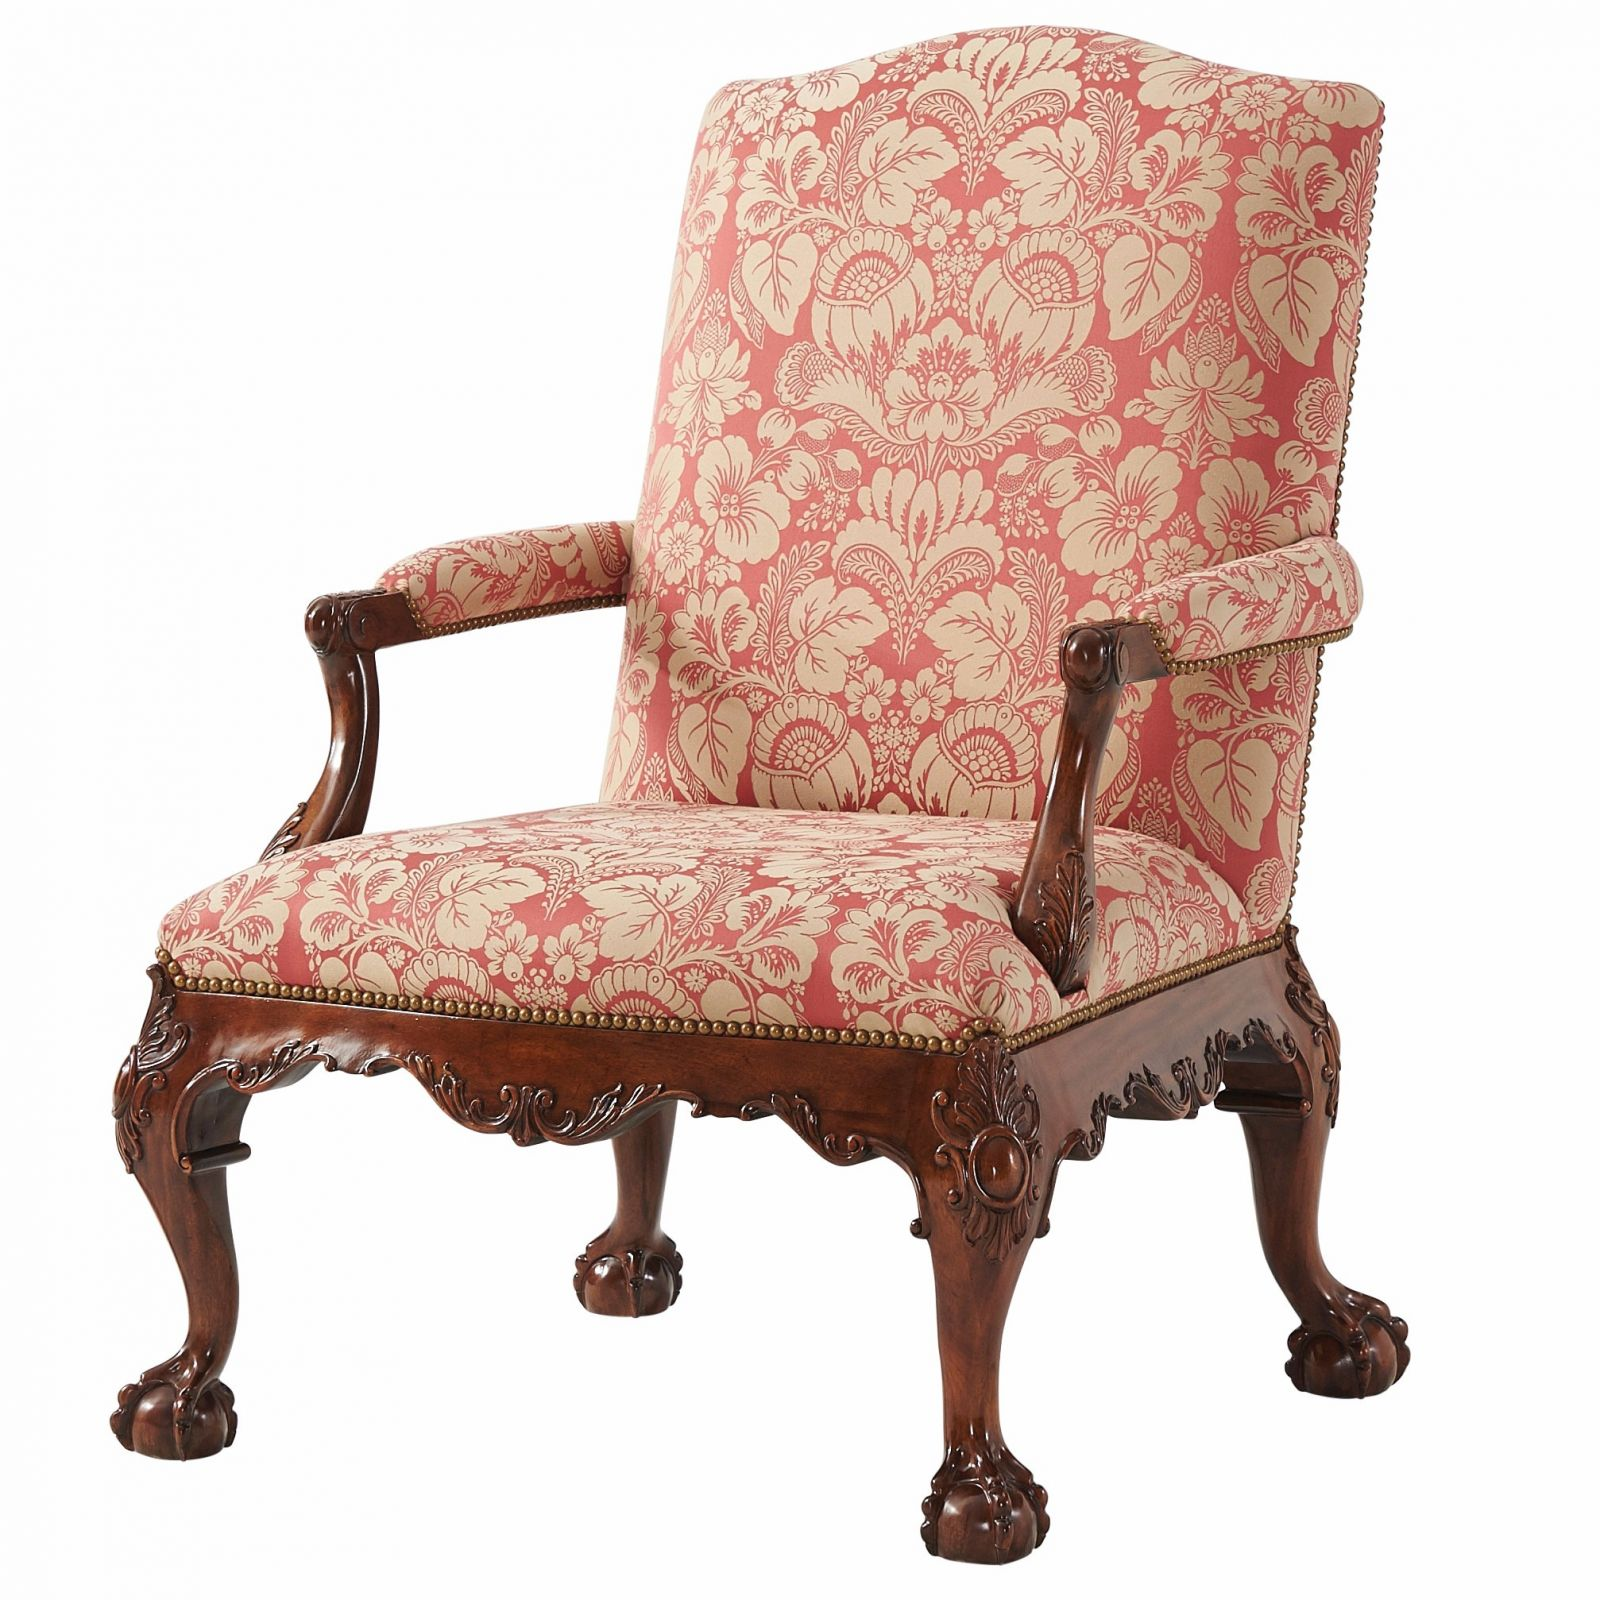 Gainsborough chair in red cotton jacquard